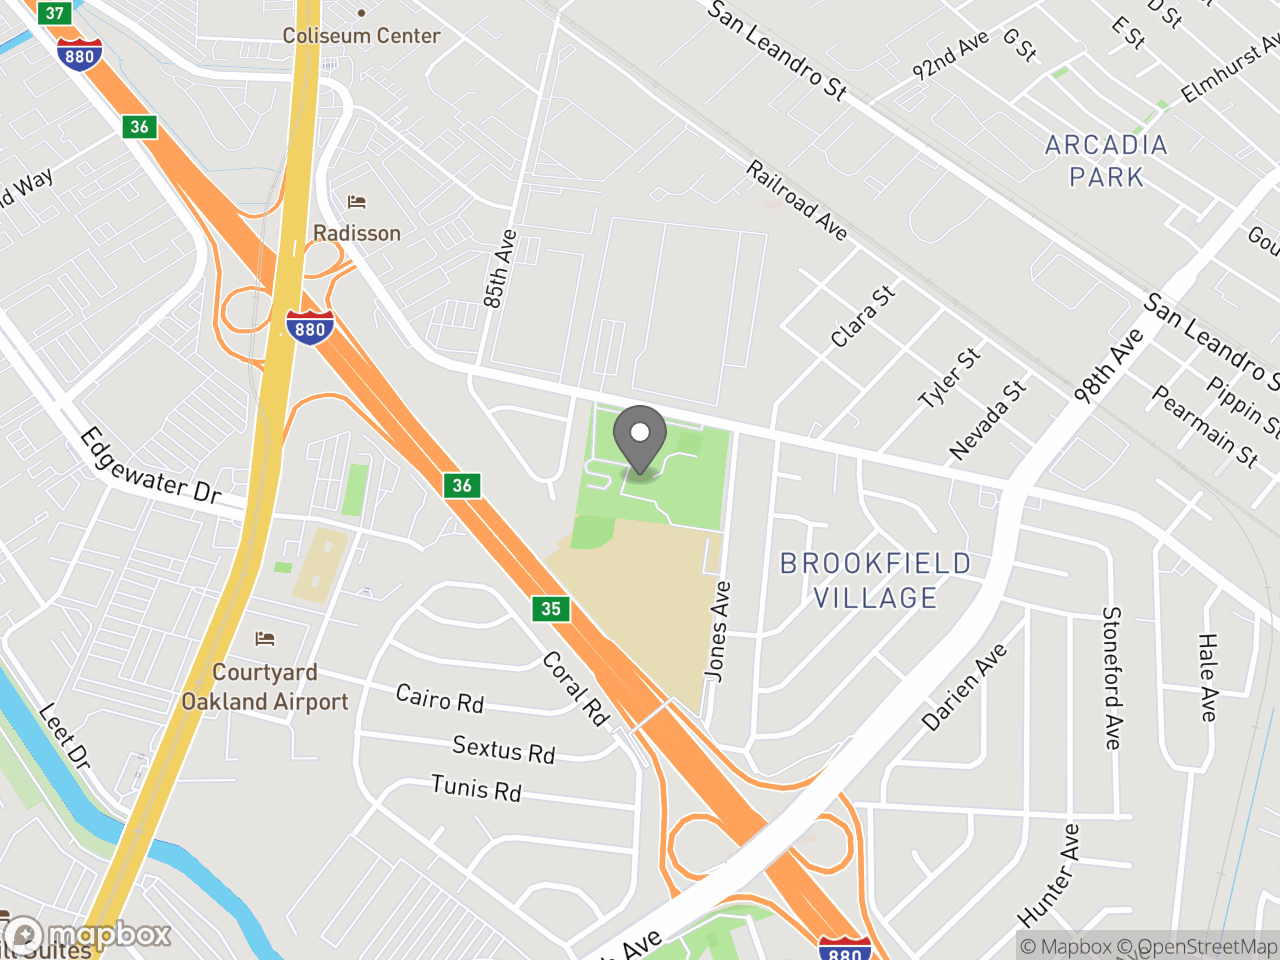 Map location for Ira Jinkins Recreation Center, located at 9175 Edes Ave in Oakland, CA 94603